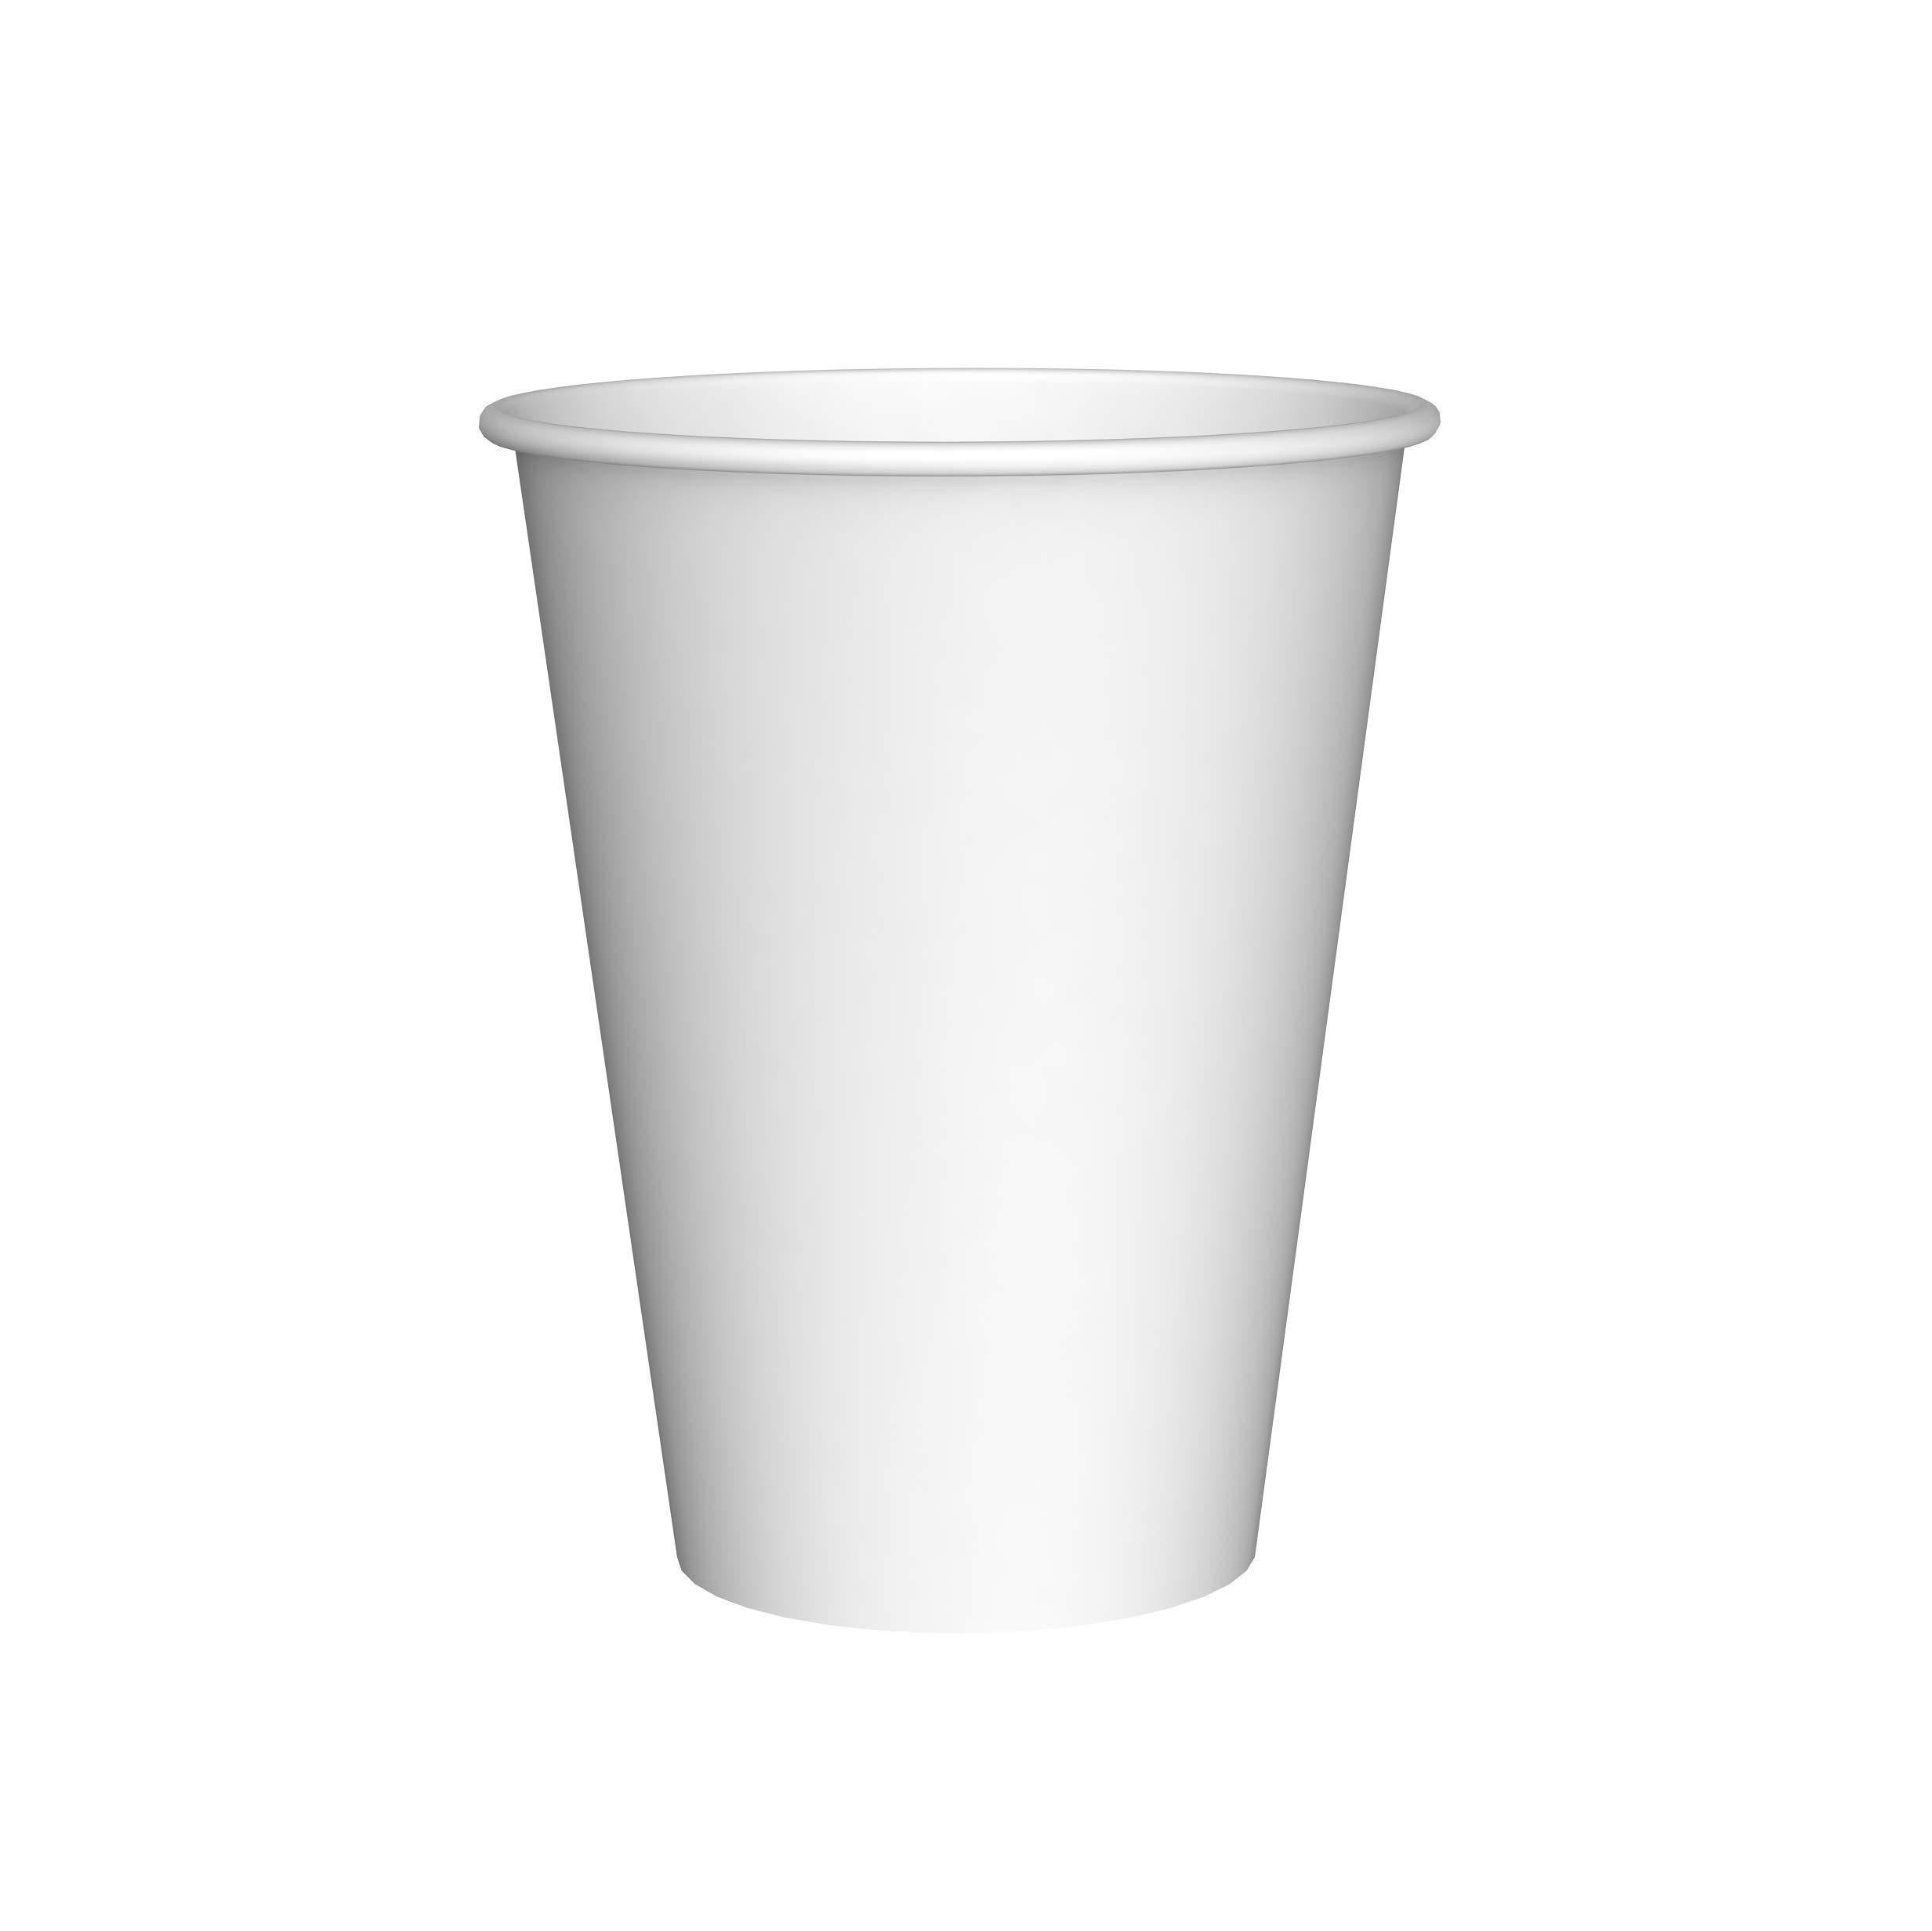 Amazon Brand - Solimo 12oz Paper Hot Cup, 500 Count by Solimo (Image #1)